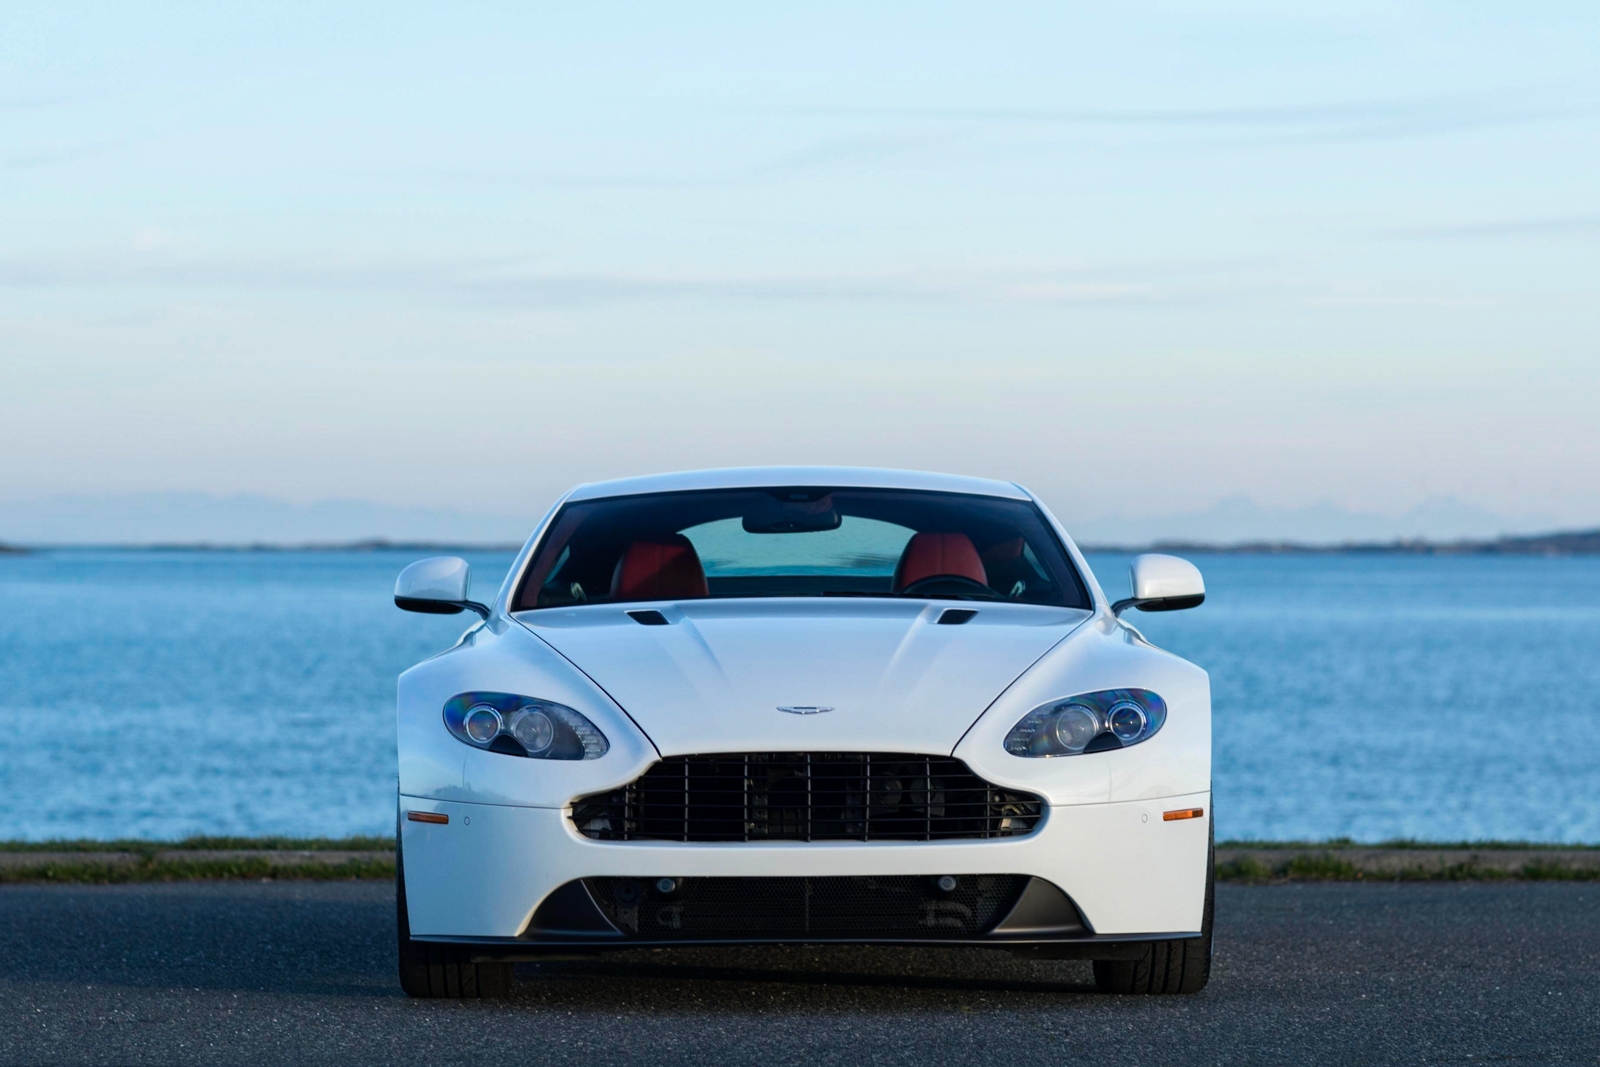 2013 Aston Martin V8 Vantage Sportshift Silver Arrow Cars Ltd